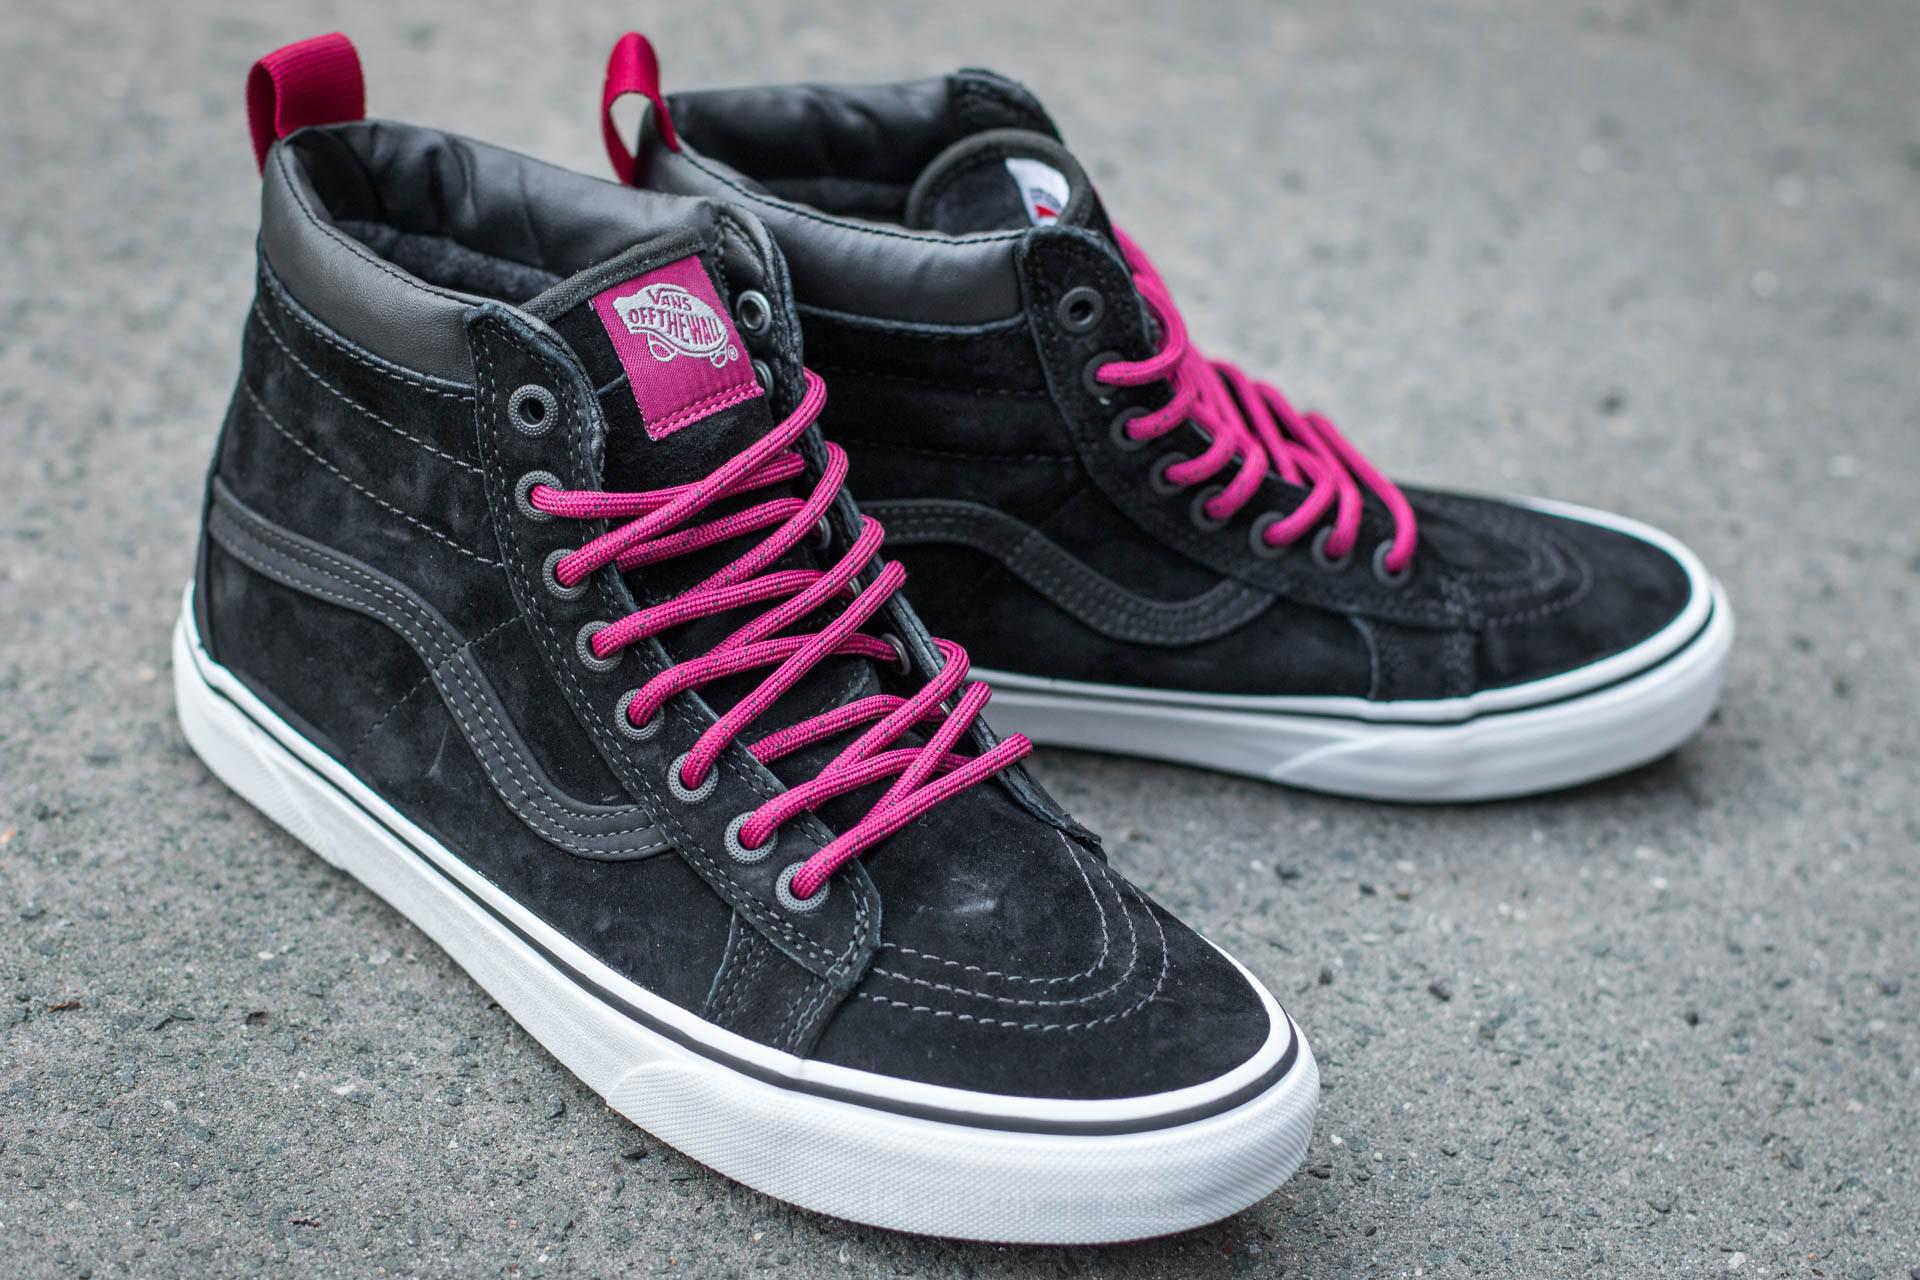 fe6244cdb968 Lyst - Vans Sk8-hi Mte (mte) Black  Beet Red for Men